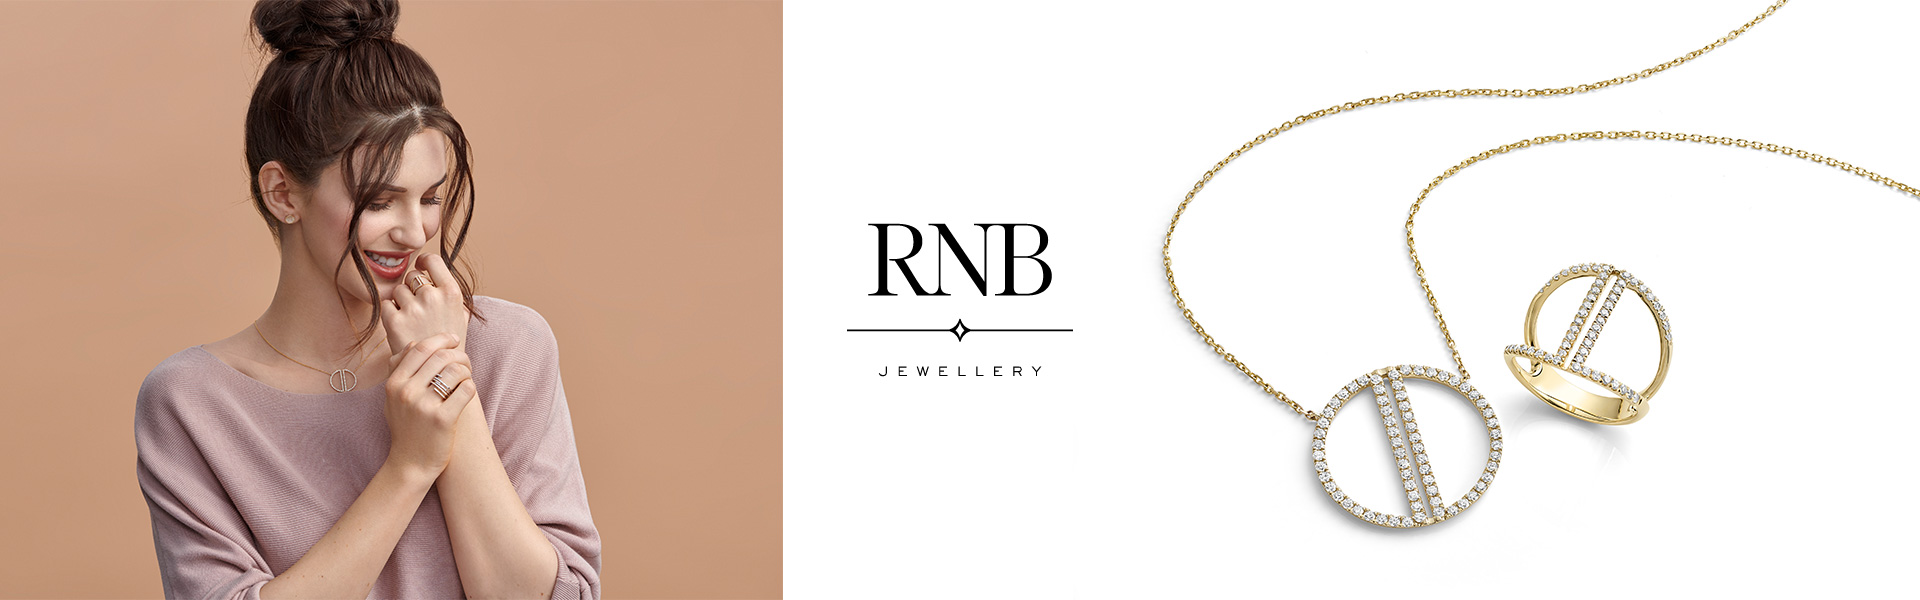 RNB Bijoux Jewellery